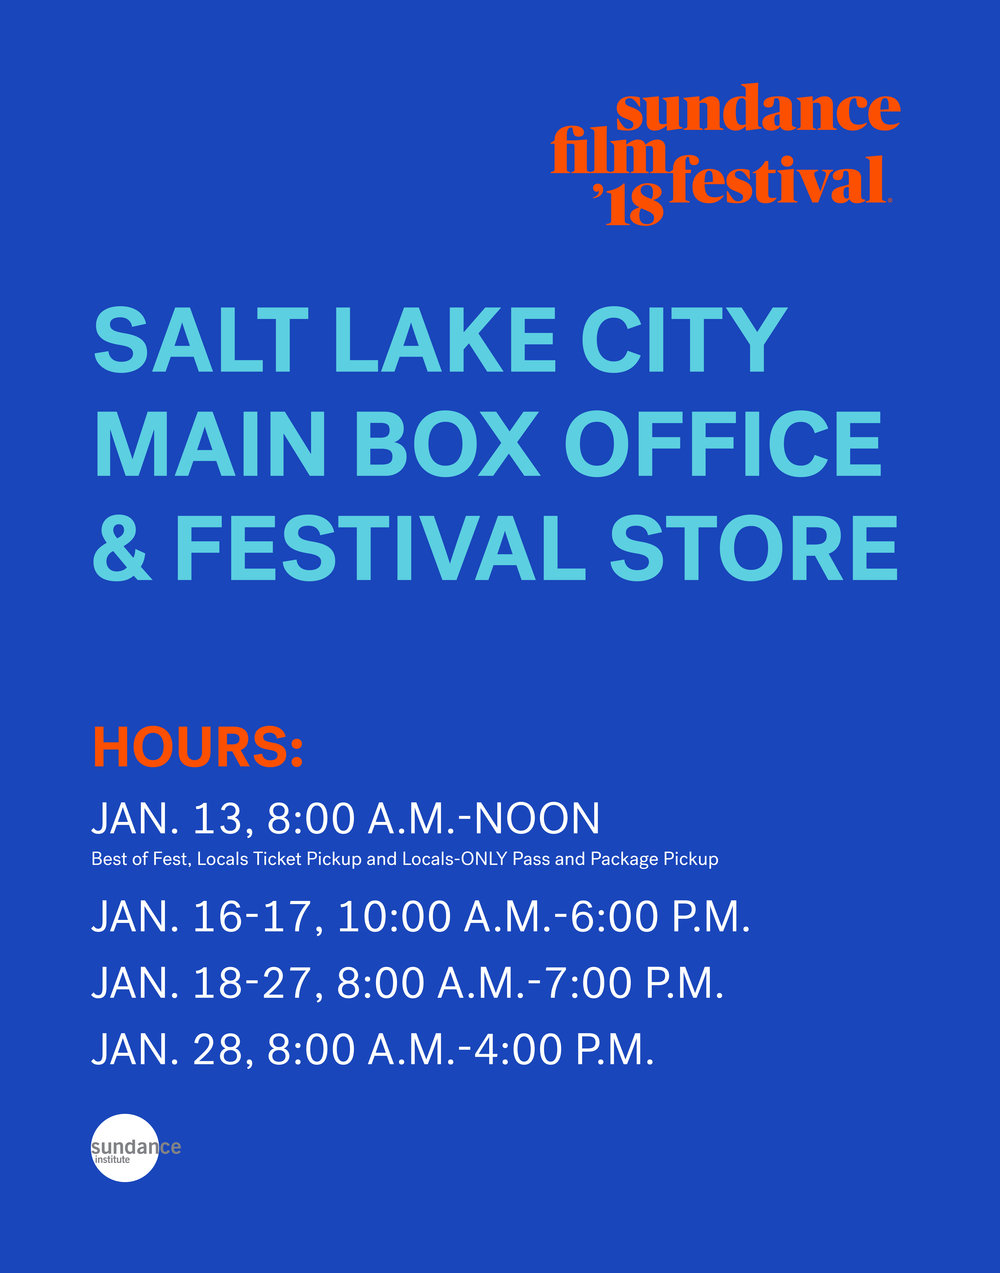 SFF18 - Trolley Square Box Office Poster 22x28.jpg